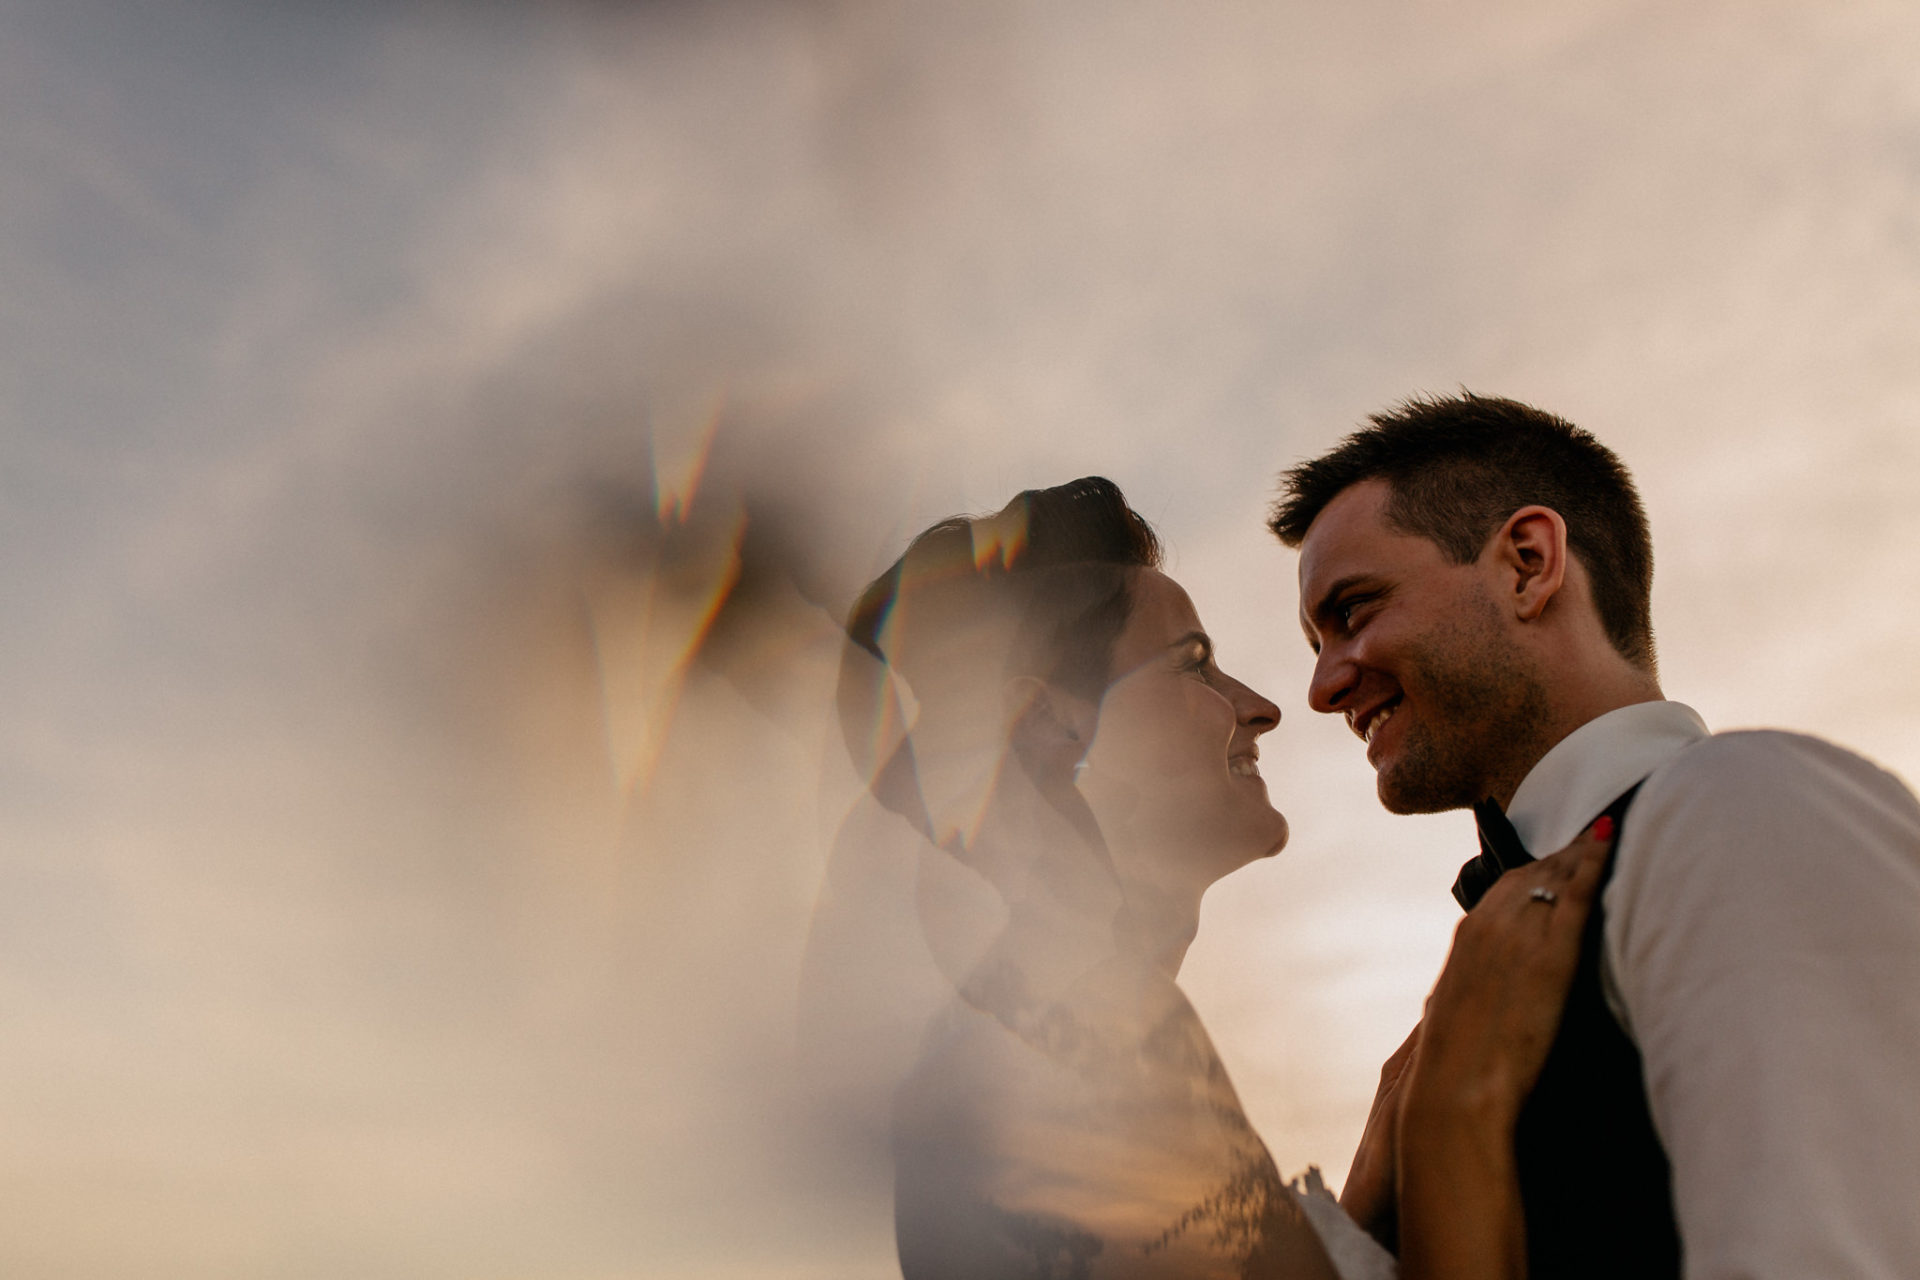 vineyard wedding germany-weingut fitz ritter wedding photographer pfalz bride and groom couple shoot sunset